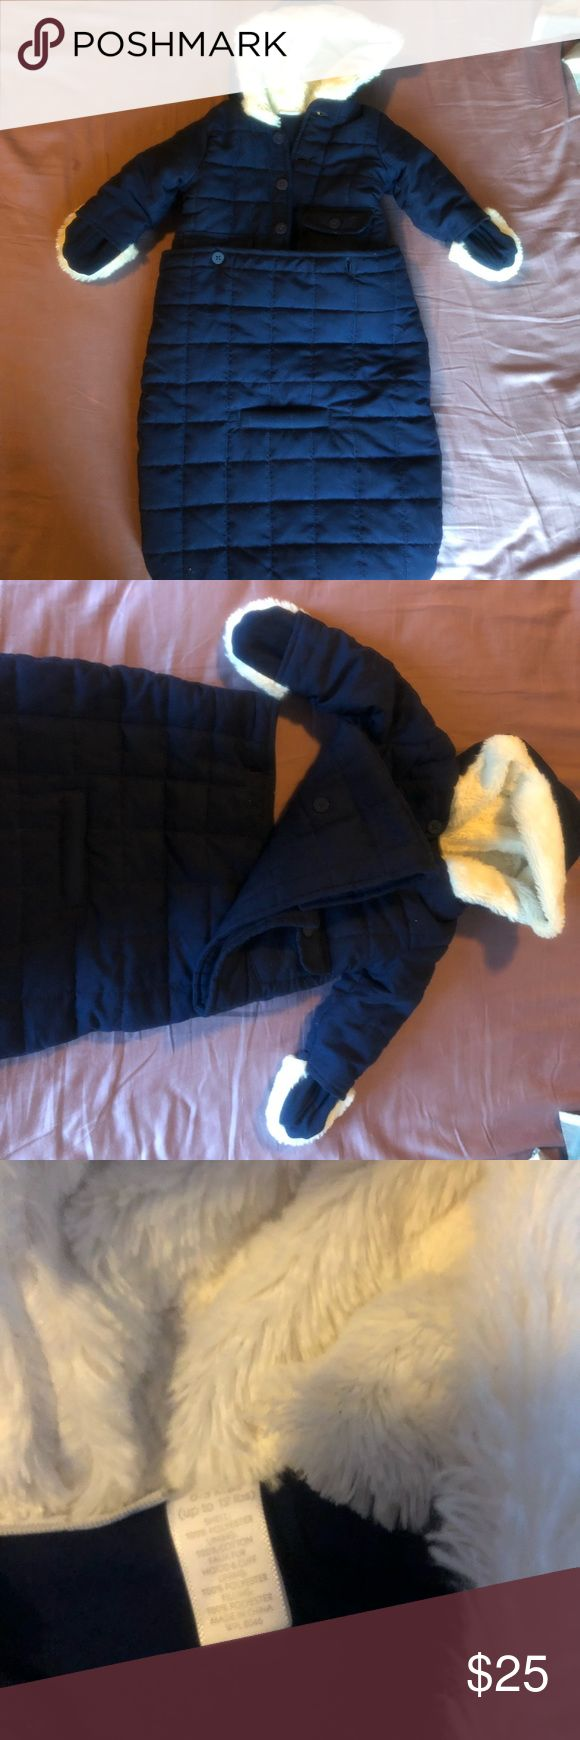 Gorgeous Baby Coat This beautiful coat will keep baby warm all winter. Bottom sack detaches when baby gets bigger. Navy blue with white faux fur lining.  Size: 0-3mos (it fit my baby a little longer) Jackets & Coats Pea Coats